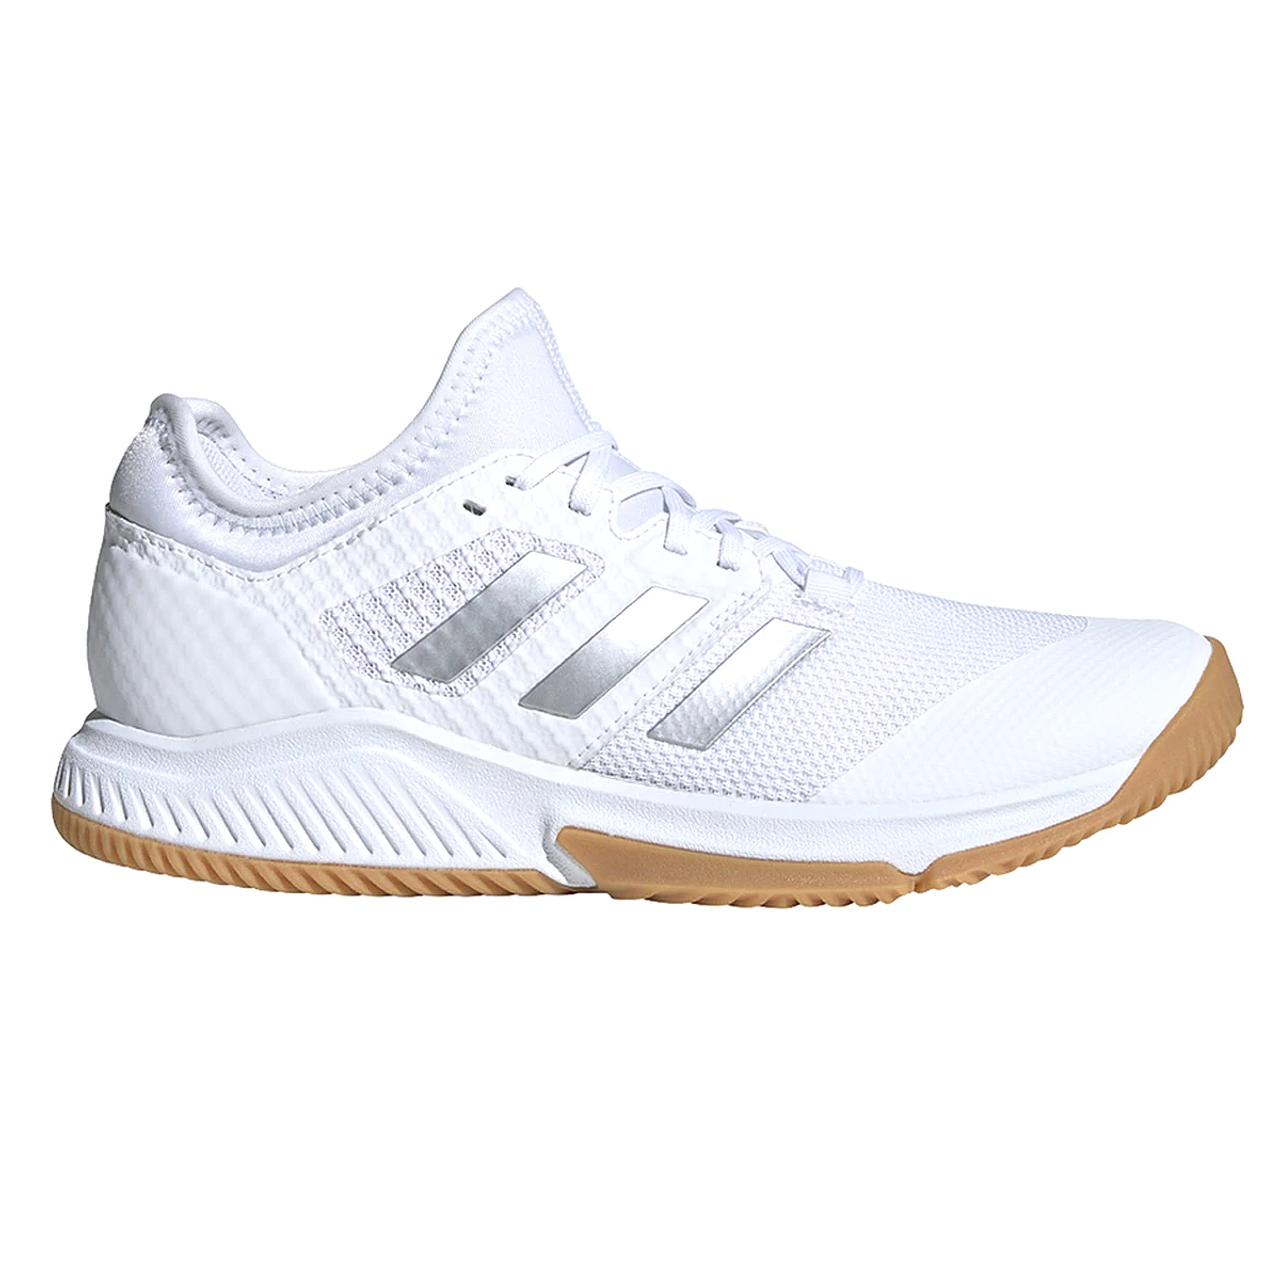 Adidas Court Team Bounce Women's Volleyball Shoes EH2602 - White, Silver